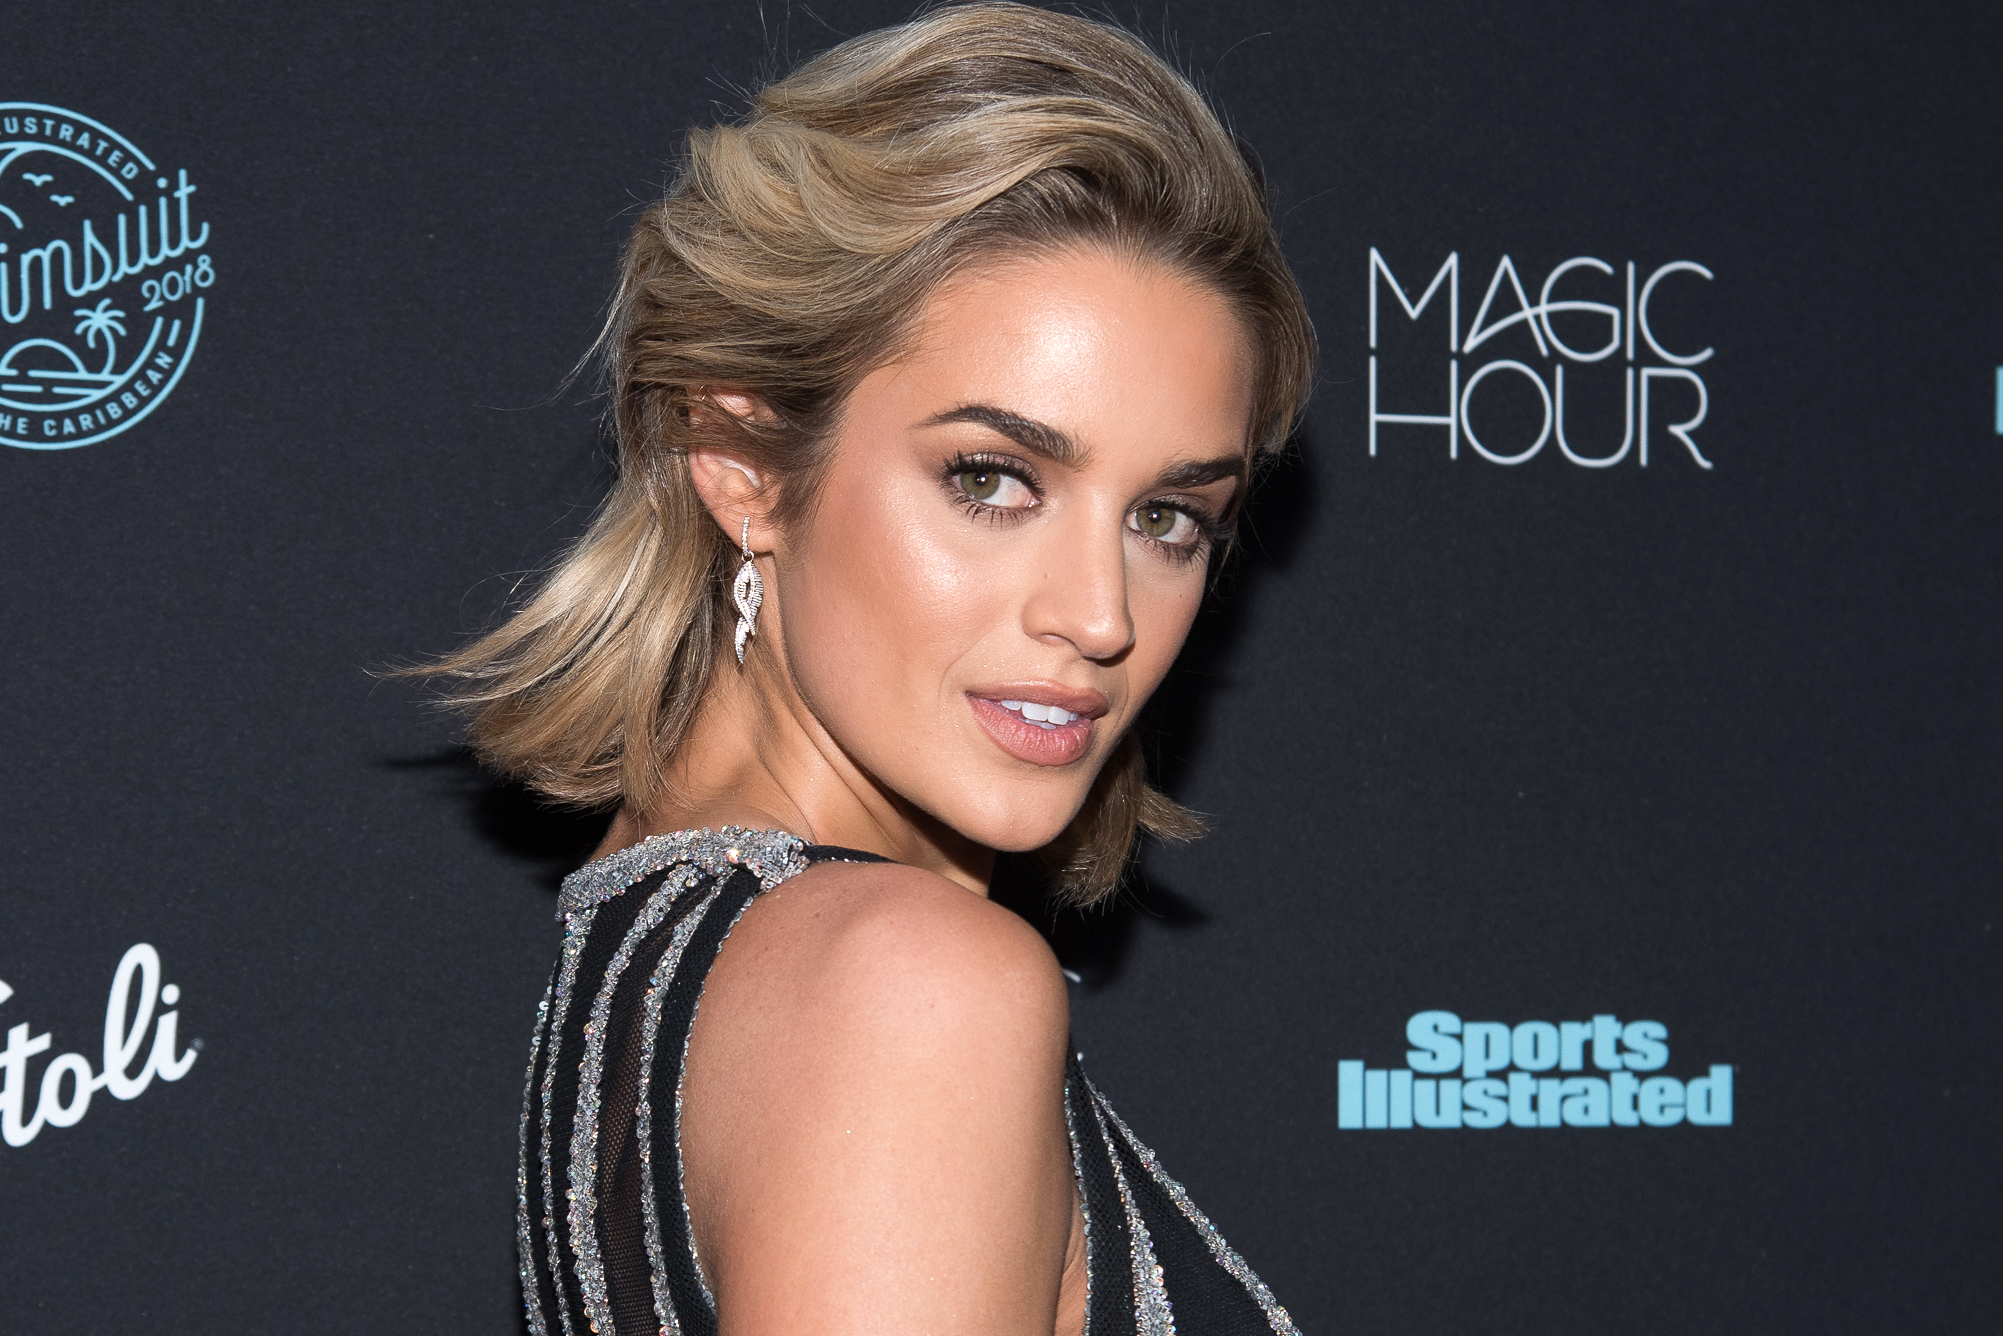 Model Allie Ayers attends the 2018 Sports Illustrated Swimsuit Issue Launch Celebration at Magic Hour at Moxy Times Square on February 14, 2018 in New York City.